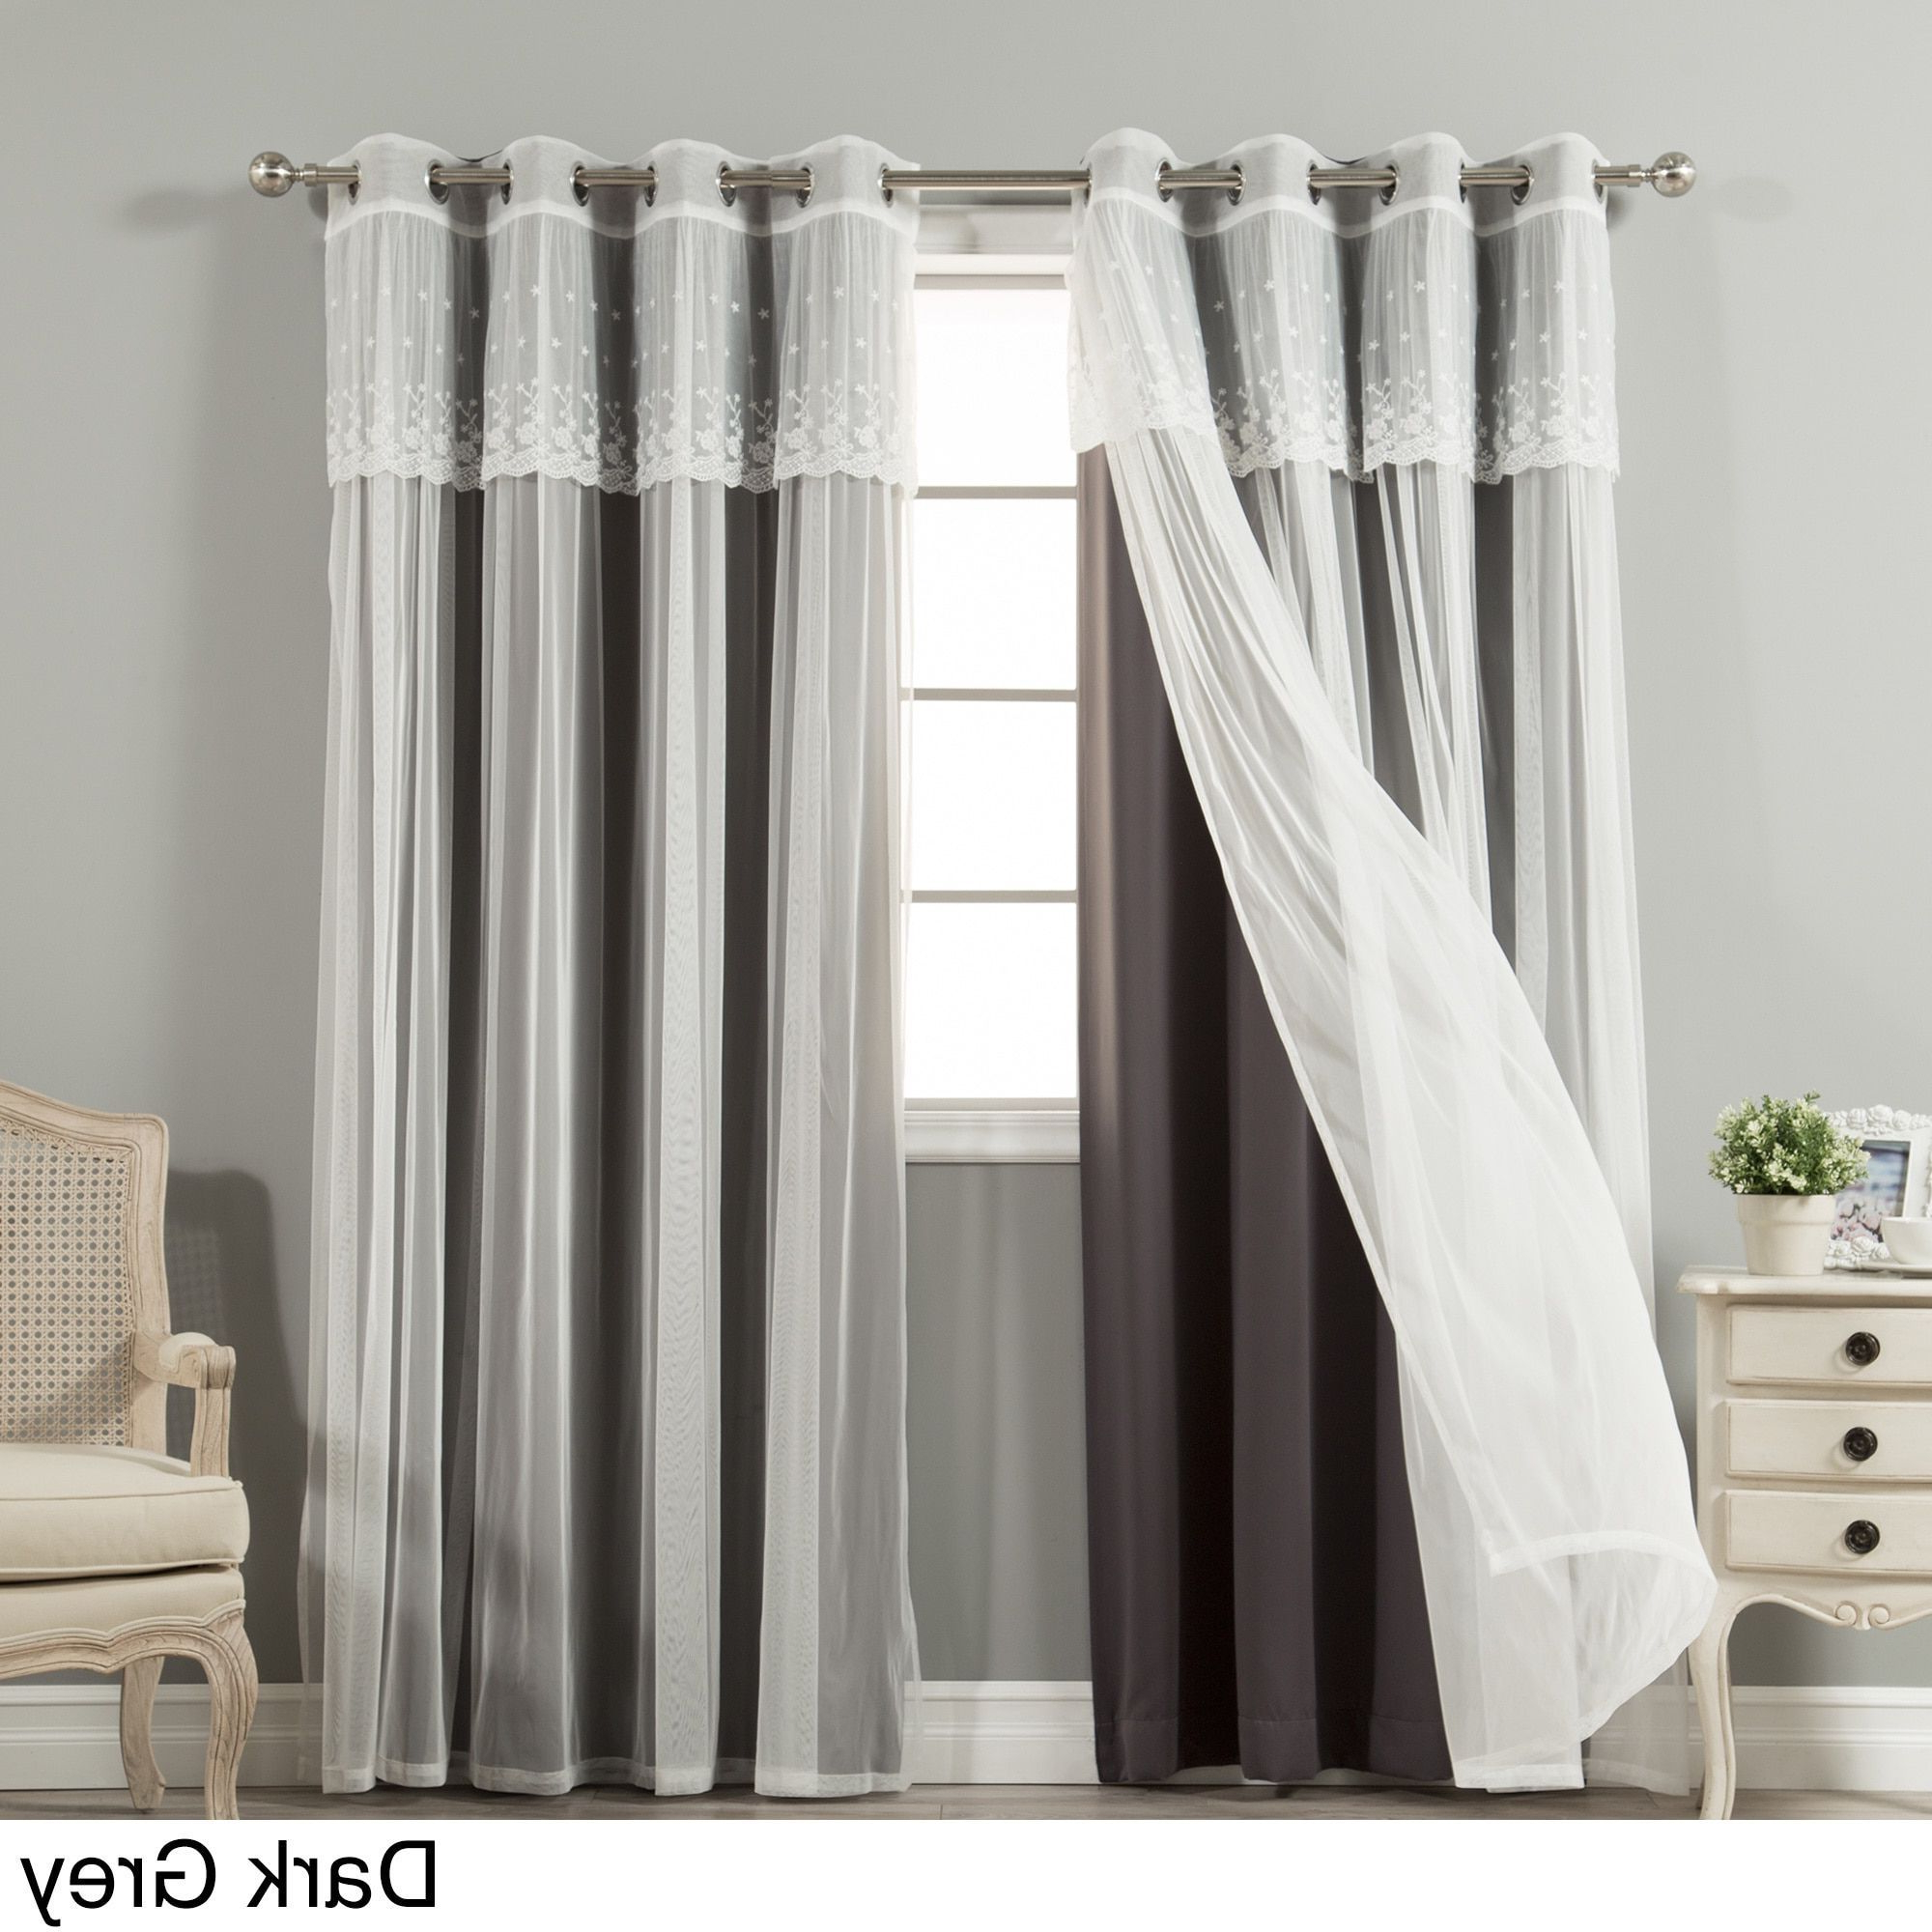 Well Known Aurora Home Mix & Match Tulle Sheer With Attached Valance Inside Tulle Sheer With Attached Valance And Blackout 4 Piece Curtain Panel Pairs (View 2 of 20)